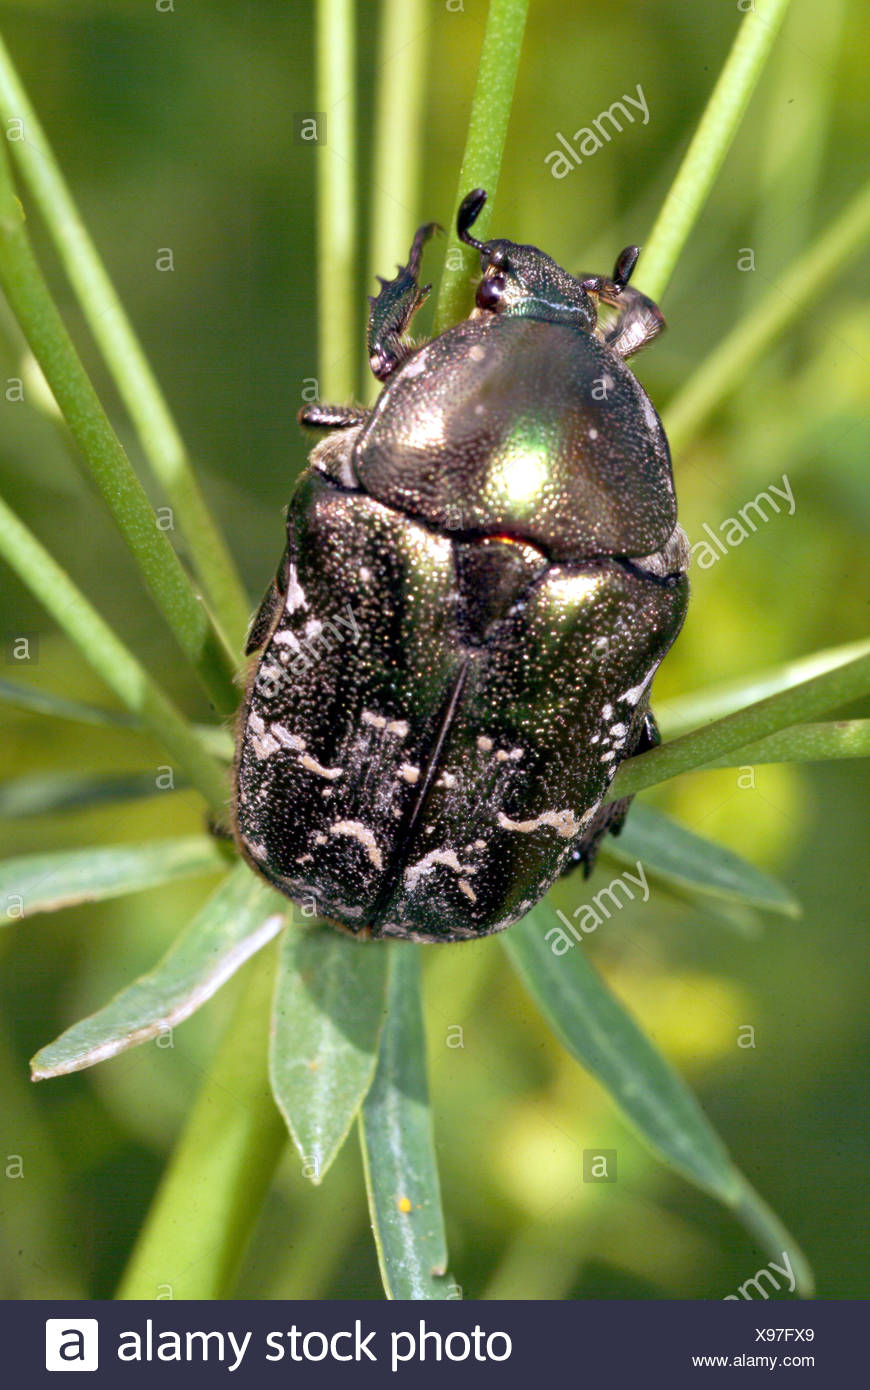 rose chafer (Cetonia aurata), on stem, Germany - Stock Image